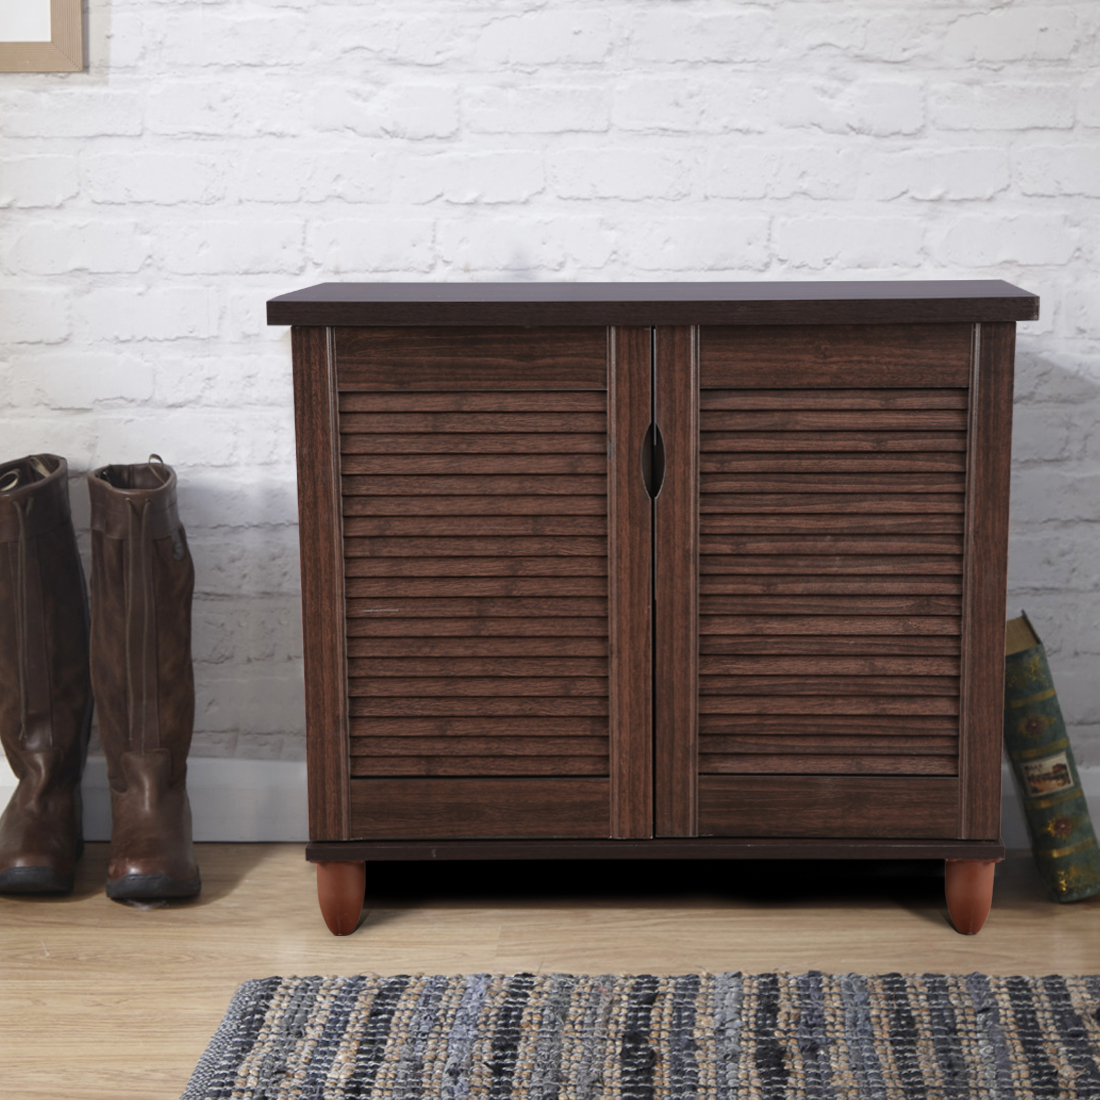 Riveria Engineered Wood Shoe Rack in Wenge Colour by HomeTown